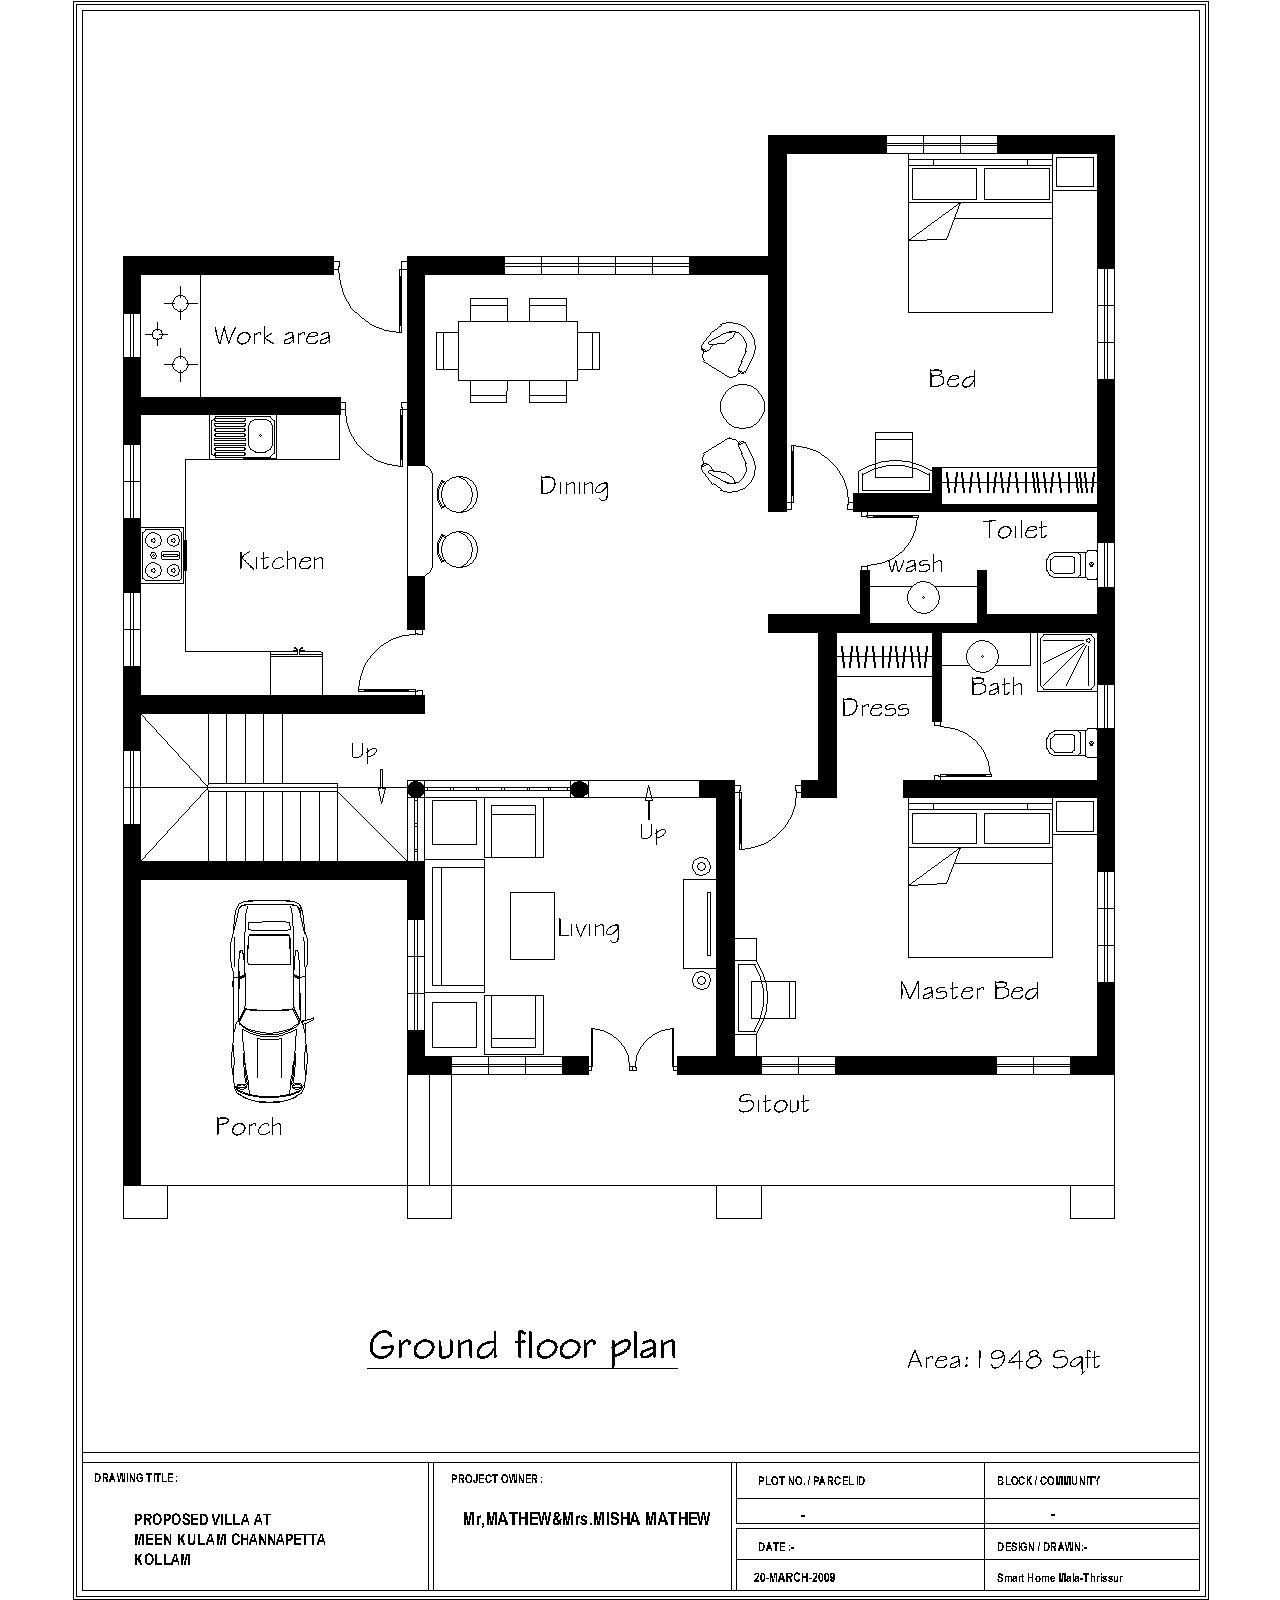 Bedroom floor plans bedroom furniture high resolution for 4 bedroom square house plans